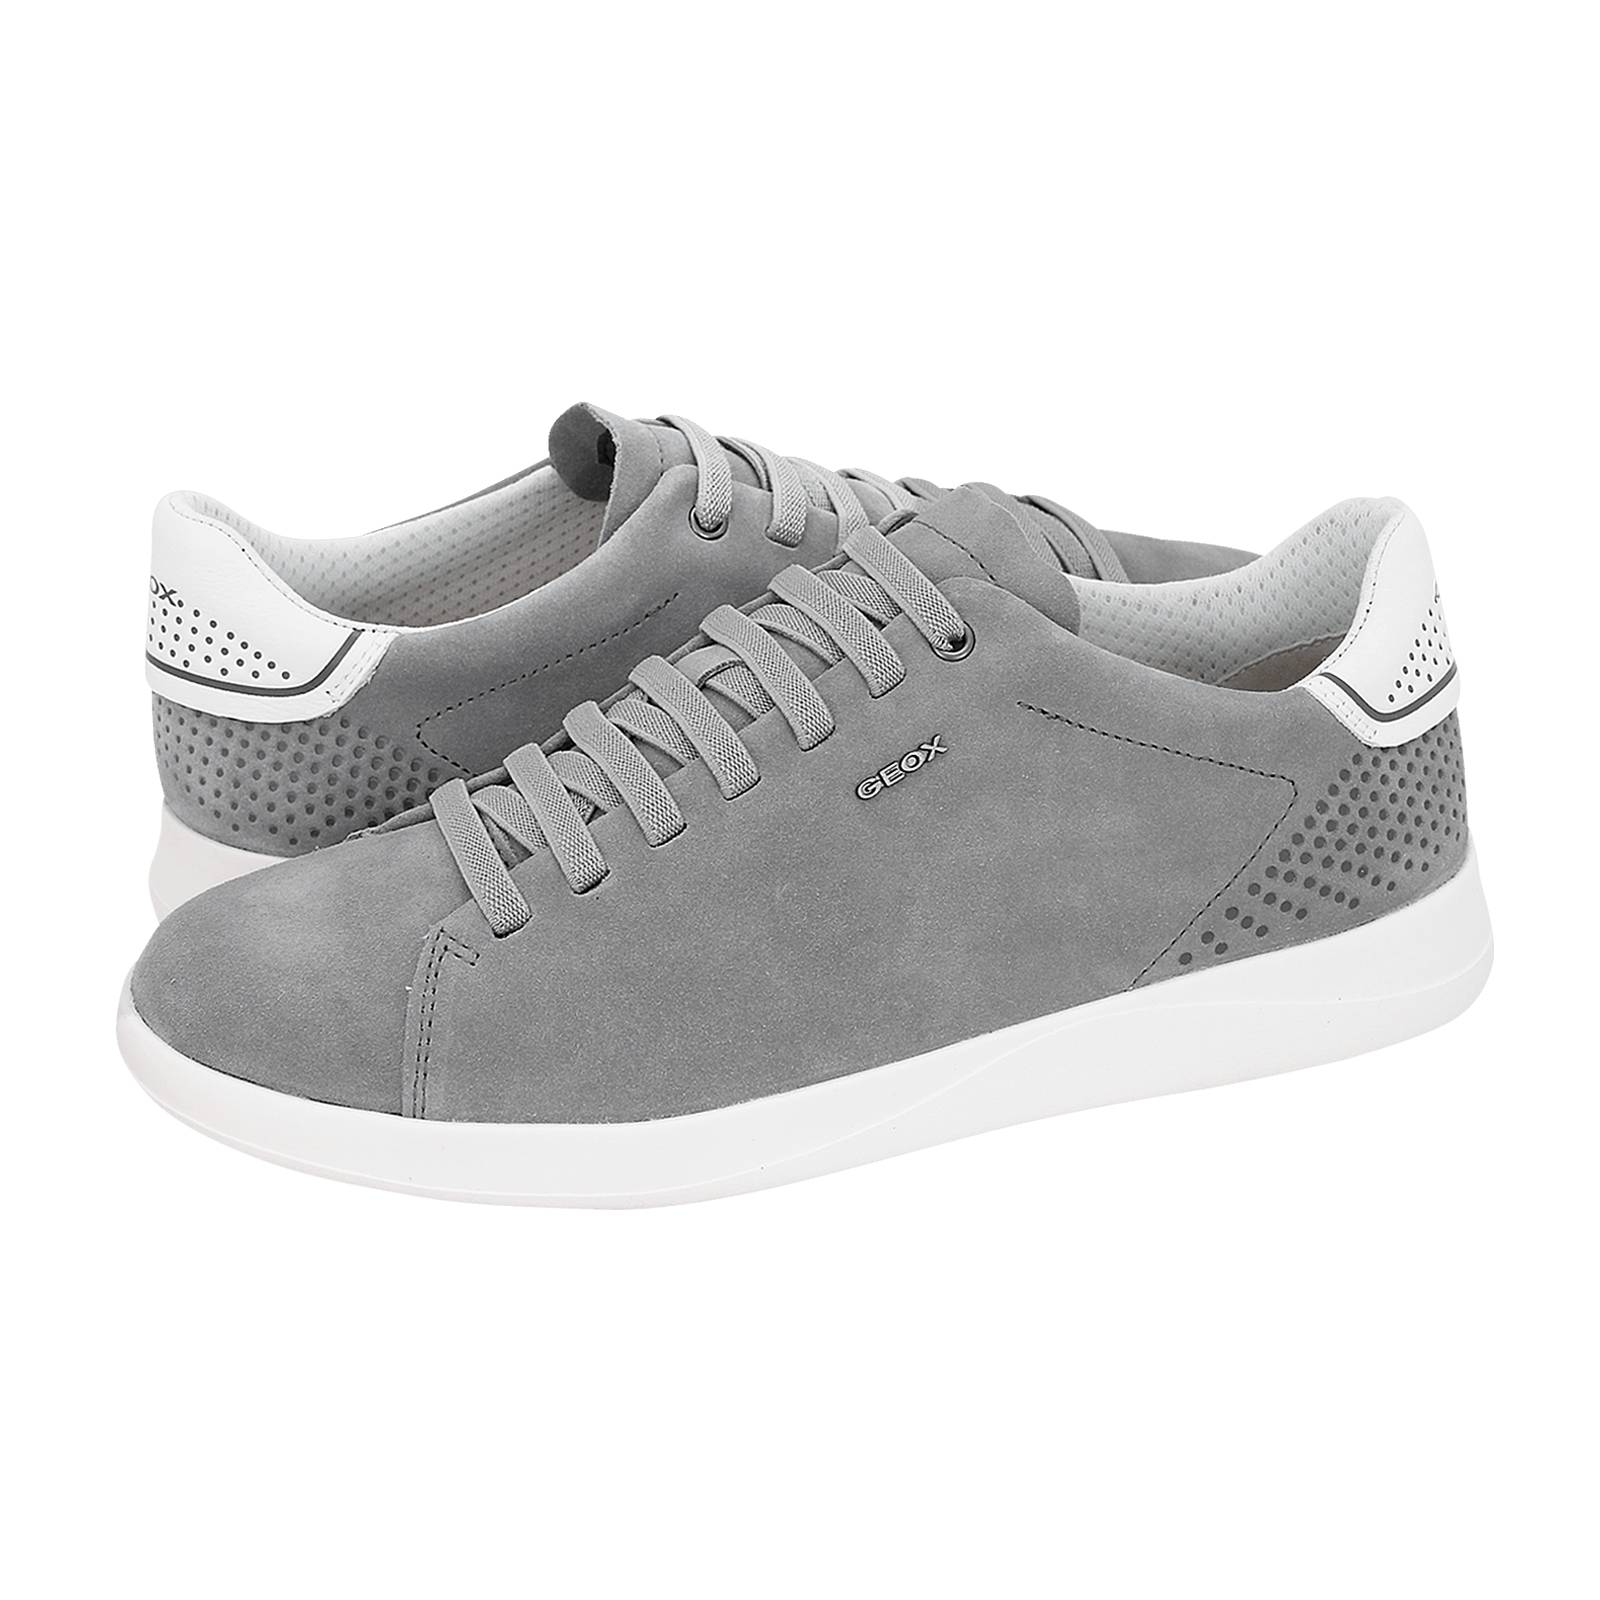 Caullery - Geox Men's casual shoes made